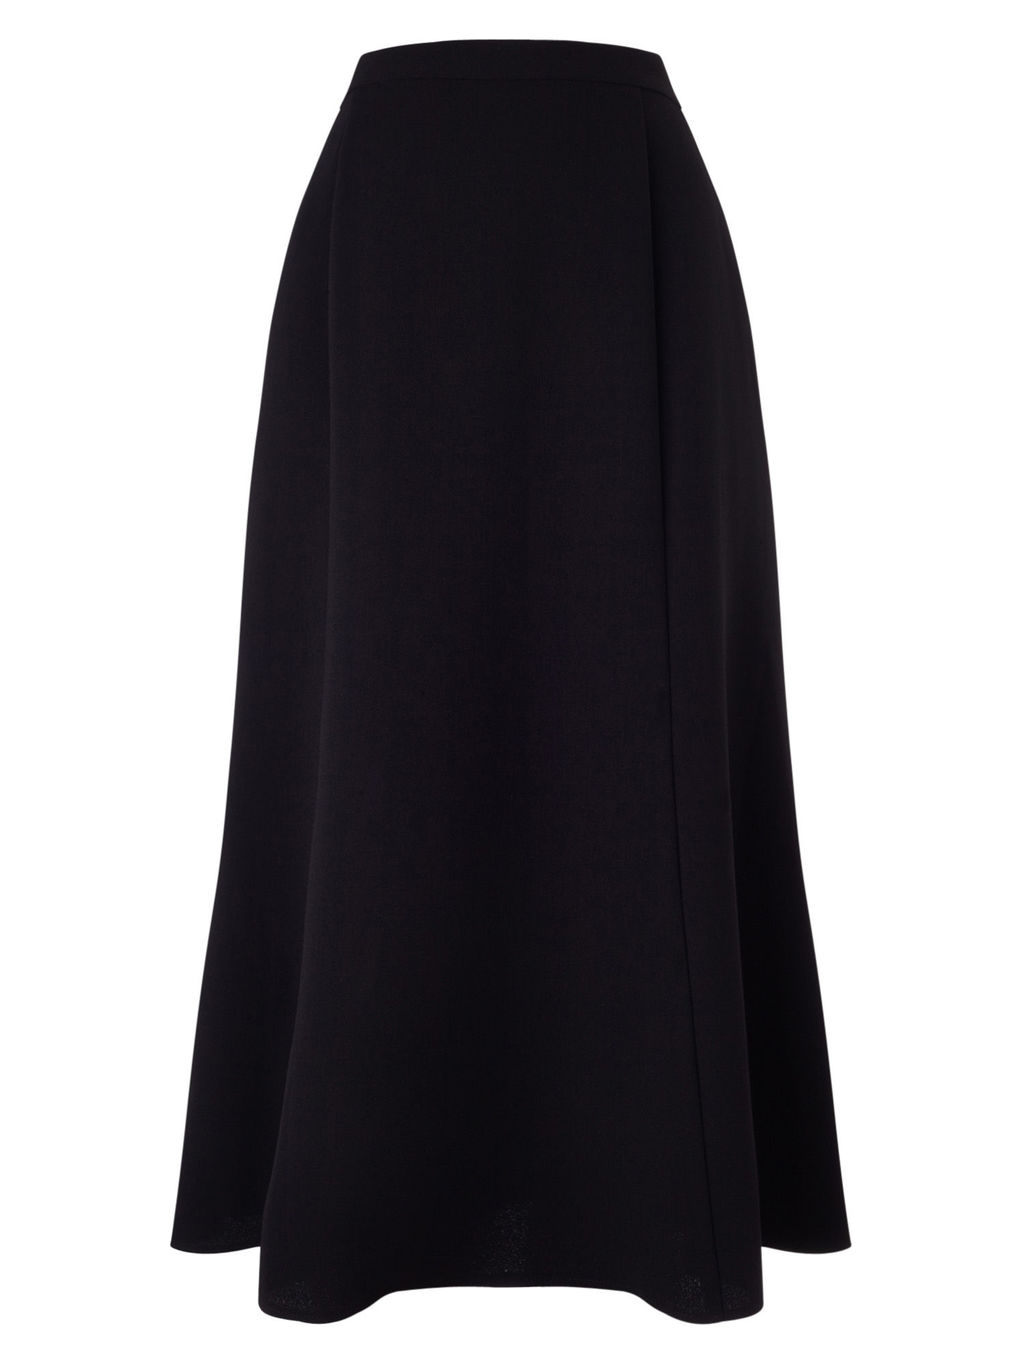 Crepe Fit&Flare Skirt - length: below the knee; pattern: plain; fit: loose/voluminous; waist: high rise; predominant colour: black; style: a-line; fibres: polyester/polyamide - 100%; texture group: crepes; pattern type: fabric; occasions: creative work; season: s/s 2016; wardrobe: basic